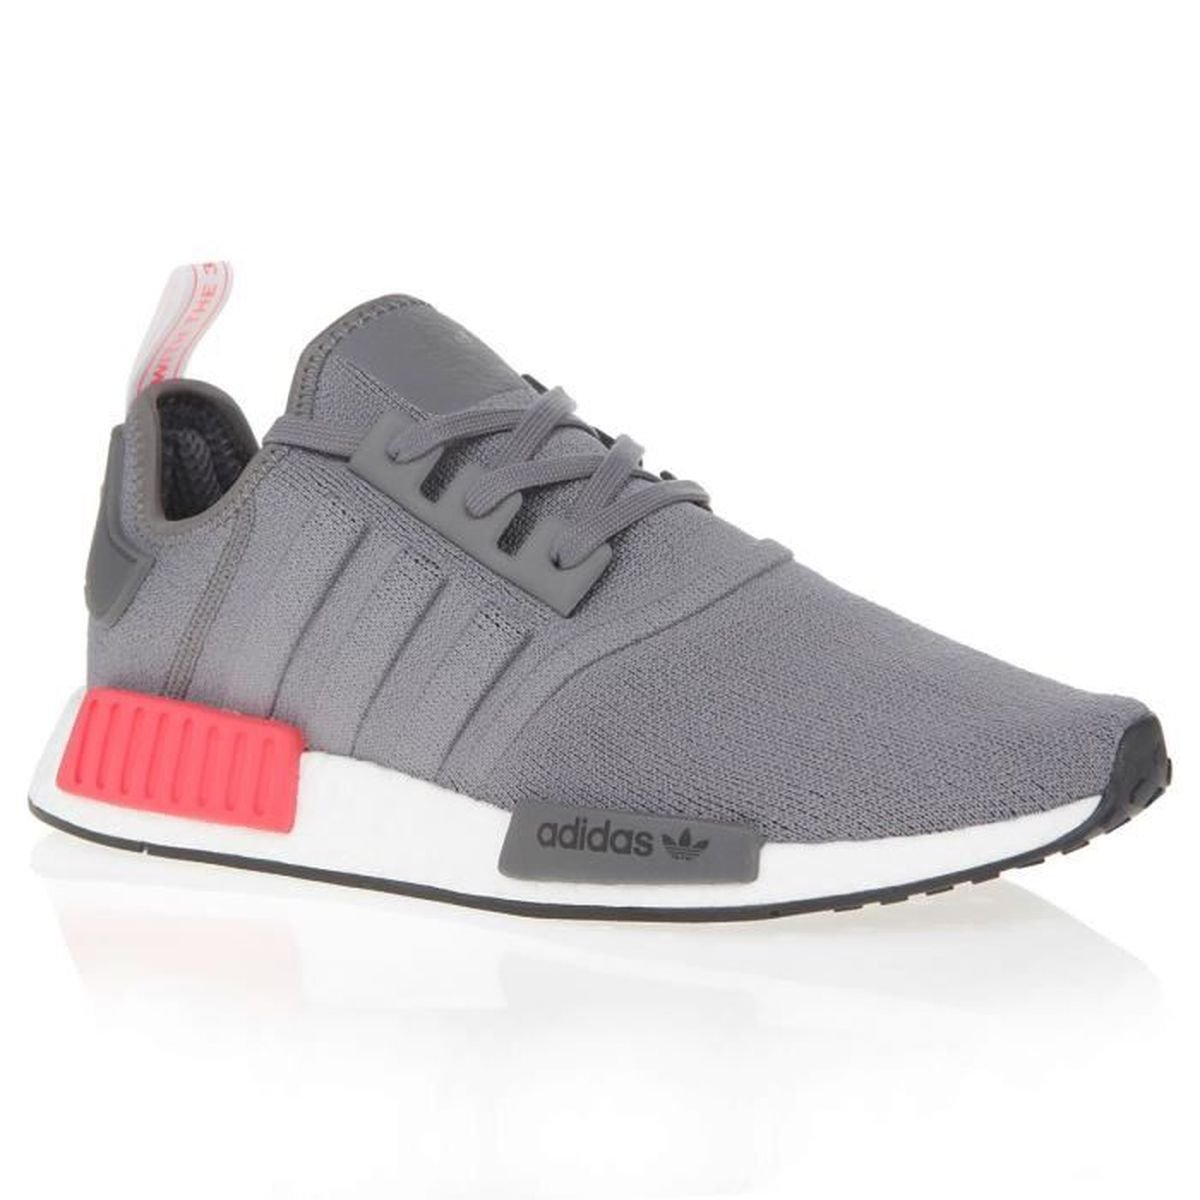 1fa984b8f2cd7 Nmd r1 homme - Achat / Vente pas cher